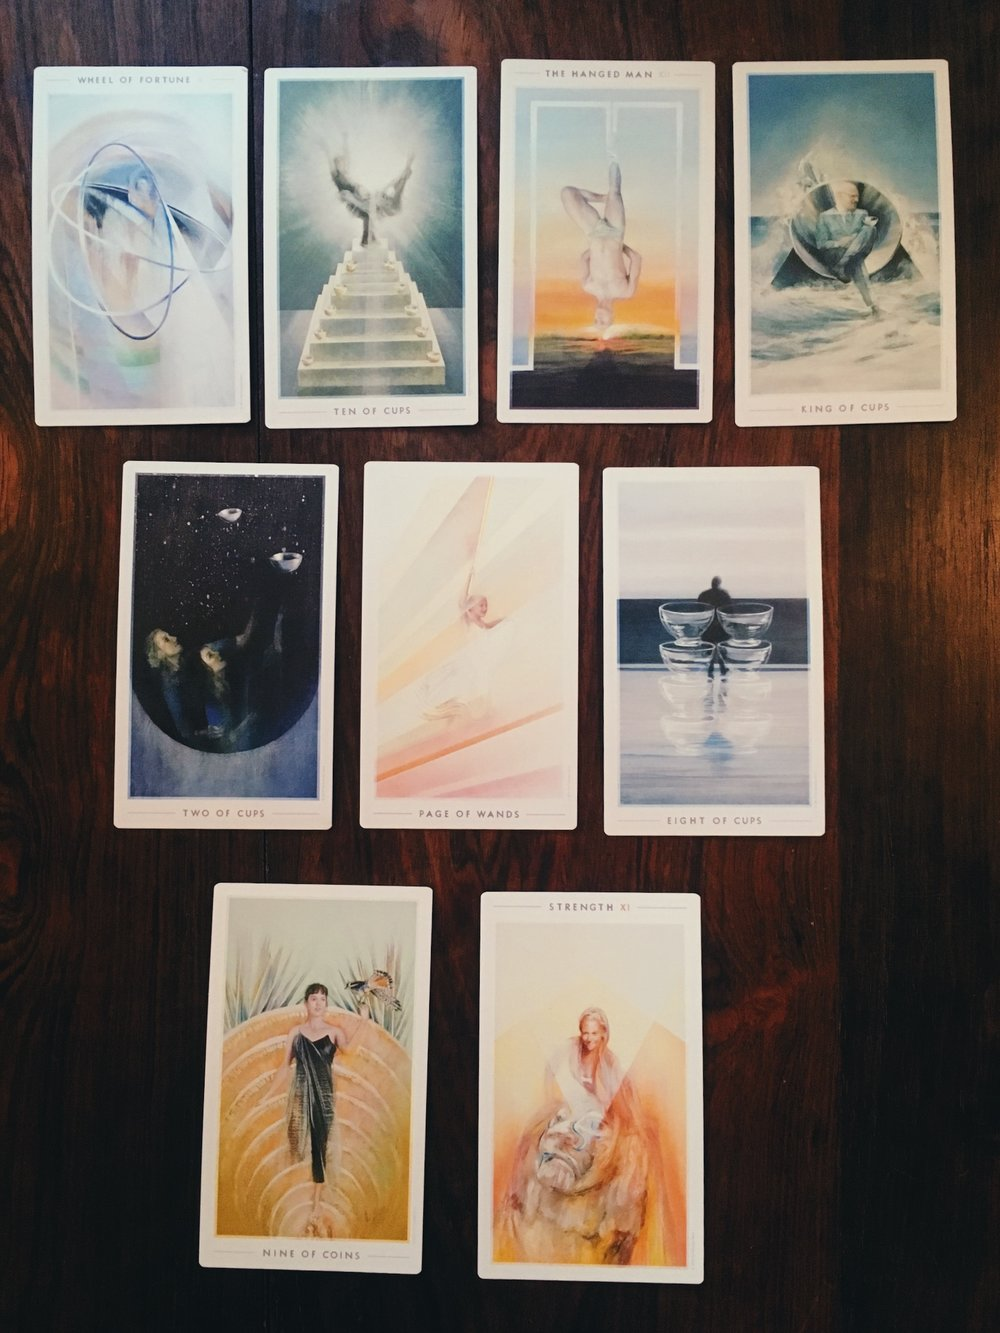 the reading I received almost a year ago with nine of pentacles, strength, and eight of cups all making an appearance!